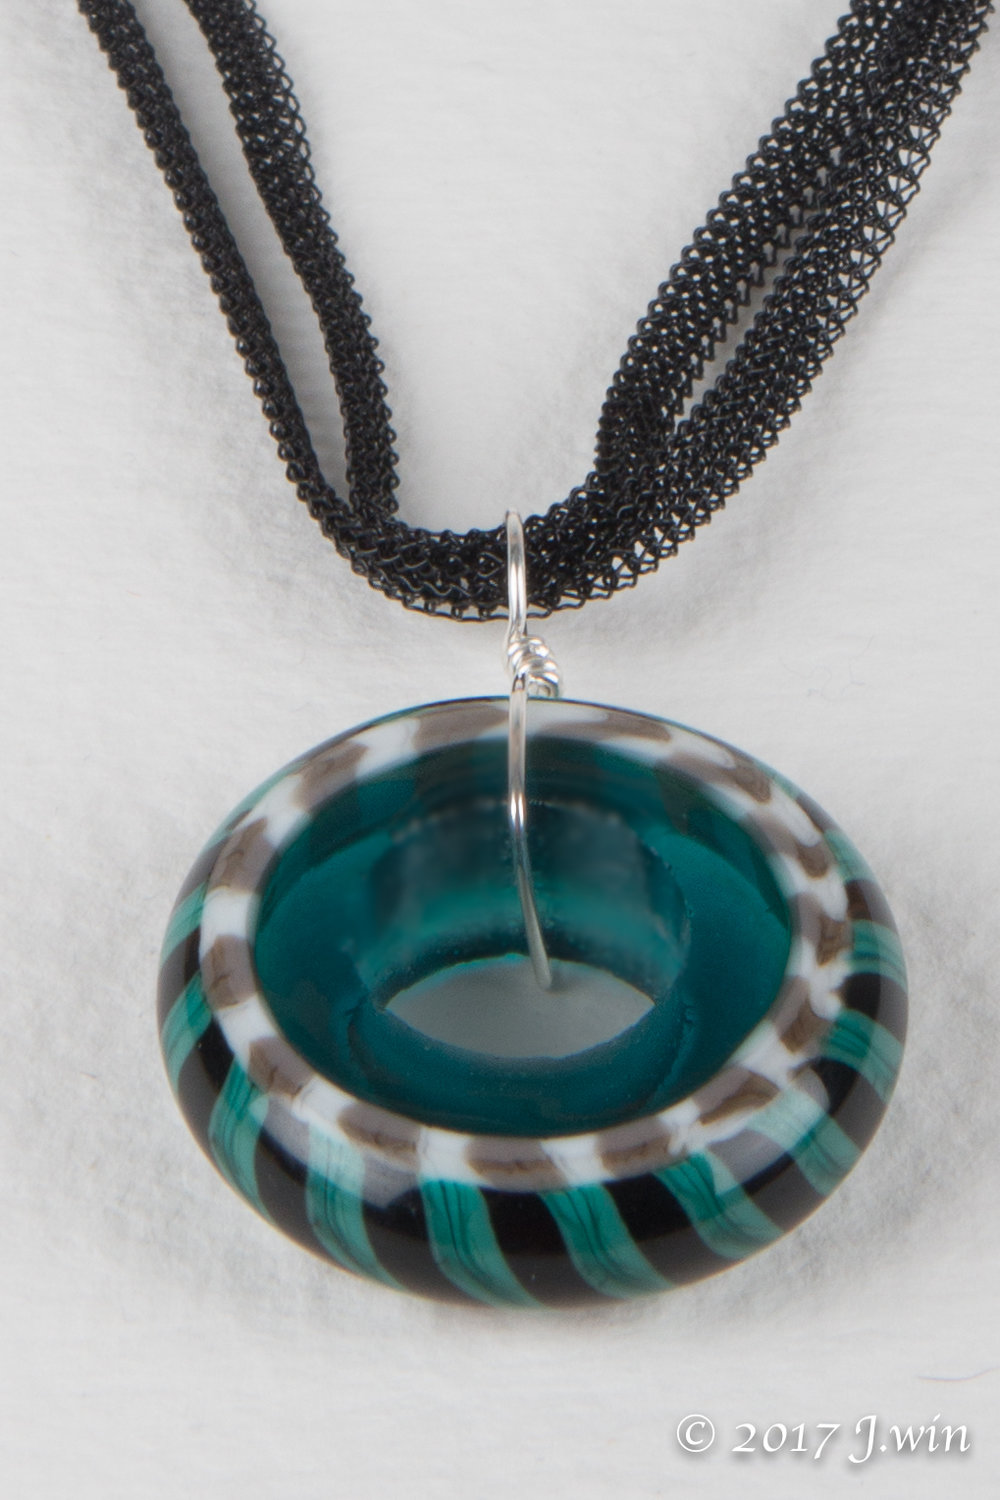 Hand made glass pendant necklace